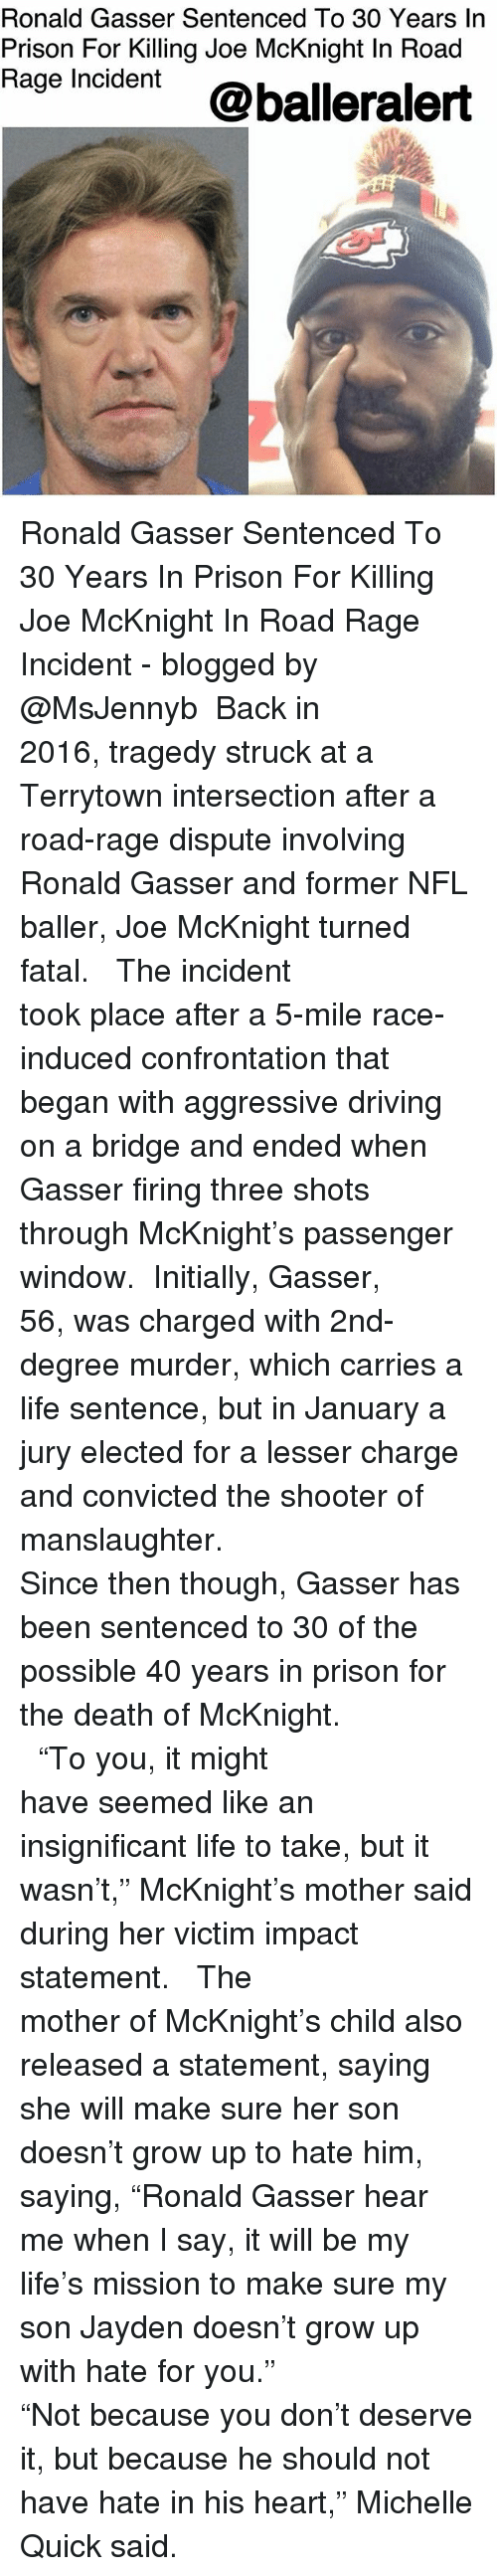 """Driving, Life, and Memes: Ronald Gasser Sentenced To 30 Years In  Prison For Killing Joe McKnight In Road  Rage Incdent @balleralert Ronald Gasser Sentenced To 30 Years In Prison For Killing Joe McKnight In Road Rage Incident - blogged by @MsJennyb ⠀⠀⠀⠀⠀⠀⠀⠀⠀ Back in 2016, tragedy struck at a Terrytown intersection after a road-rage dispute involving Ronald Gasser and former NFL baller, Joe McKnight turned fatal. ⠀⠀⠀⠀⠀⠀⠀⠀⠀ ⠀⠀⠀⠀⠀⠀⠀⠀⠀ The incident took place after a 5-mile race-induced confrontation that began with aggressive driving on a bridge and ended when Gasser firing three shots through McKnight's passenger window. ⠀⠀⠀⠀⠀⠀⠀⠀⠀ Initially, Gasser, 56, was charged with 2nd-degree murder, which carries a life sentence, but in January a jury elected for a lesser charge and convicted the shooter of manslaughter. ⠀⠀⠀⠀⠀⠀⠀⠀⠀ ⠀⠀⠀⠀⠀⠀⠀⠀⠀ Since then though, Gasser has been sentenced to 30 of the possible 40 years in prison for the death of McKnight. ⠀⠀⠀⠀⠀⠀⠀⠀⠀ ⠀⠀⠀⠀⠀⠀⠀⠀⠀ ⠀⠀⠀⠀⠀⠀⠀⠀⠀ """"To you, it might have seemed like an insignificant life to take, but it wasn't,"""" McKnight's mother said during her victim impact statement. ⠀⠀⠀⠀⠀⠀⠀⠀⠀ ⠀⠀⠀⠀⠀⠀⠀⠀⠀ The mother of McKnight's child also released a statement, saying she will make sure her son doesn't grow up to hate him, saying, """"Ronald Gasser hear me when I say, it will be my life's mission to make sure my son Jayden doesn't grow up with hate for you."""" ⠀⠀⠀⠀⠀⠀⠀⠀⠀ ⠀⠀⠀⠀⠀⠀⠀⠀⠀ """"Not because you don't deserve it, but because he should not have hate in his heart,"""" Michelle Quick said."""